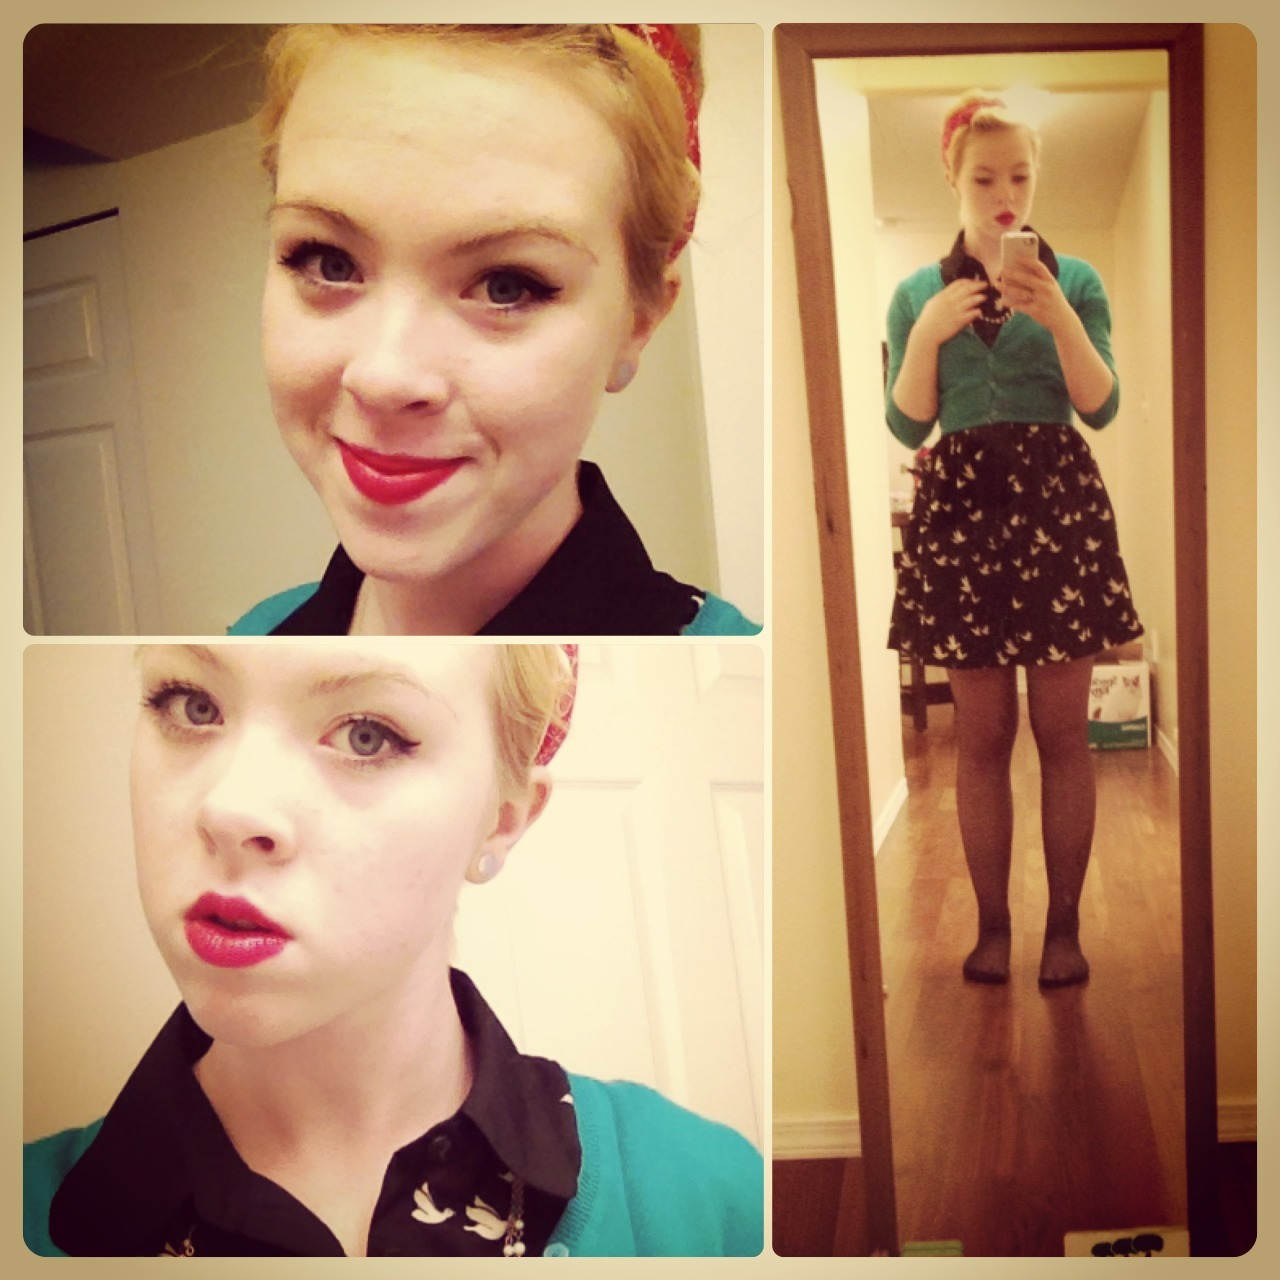 outfit post from last night! went to see the Great Gatsby with the boyfriend and some friends. dress is from Forever 21, cardi is Old Navy. my bandana is from the dollar store~